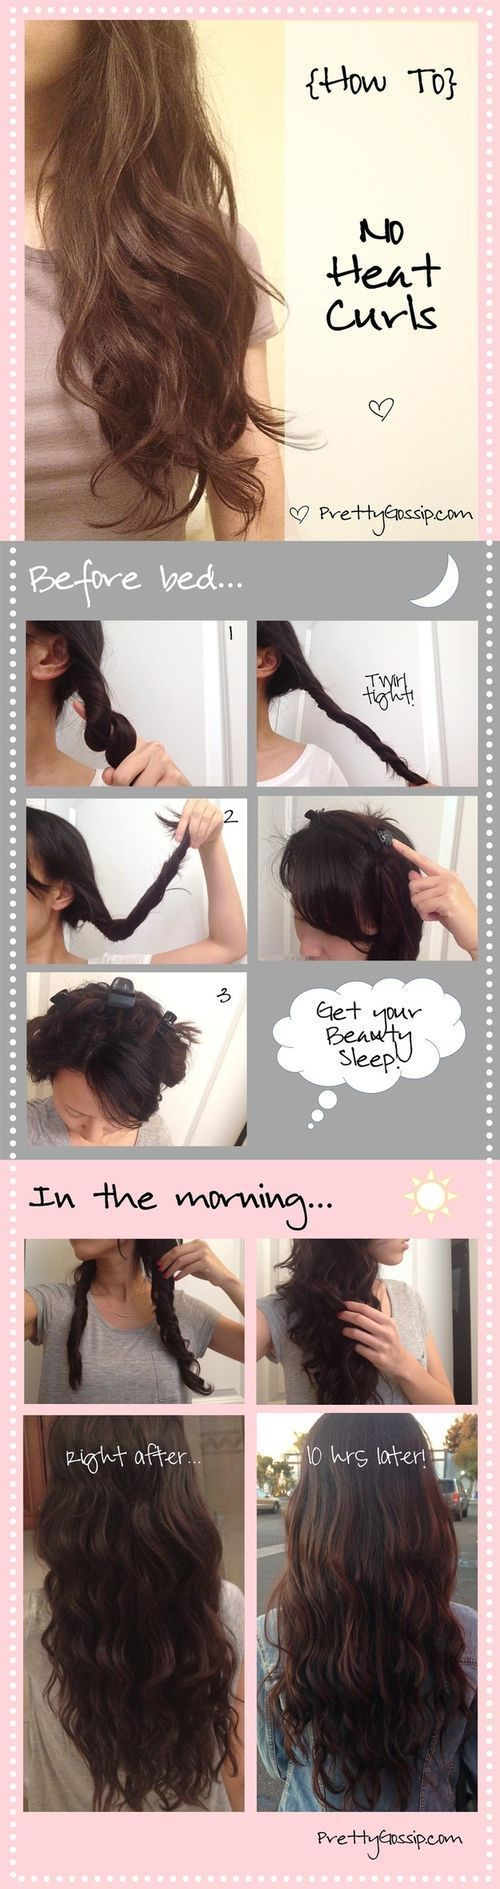 I wonder if this will work on my virtually-impossible-to-curl hair.